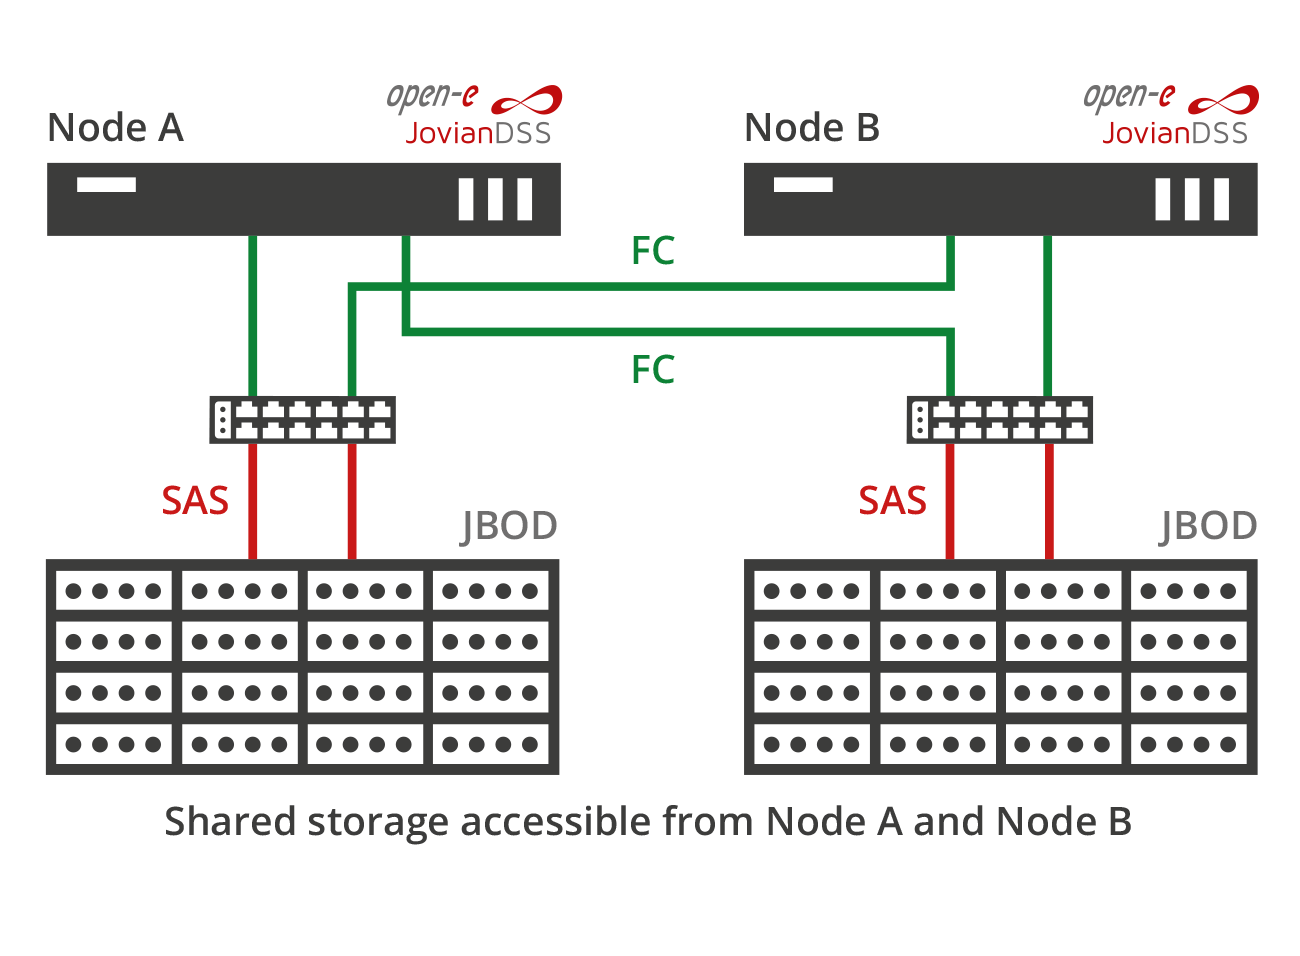 Standard High Availability dual internal storage connected using ATTO switches